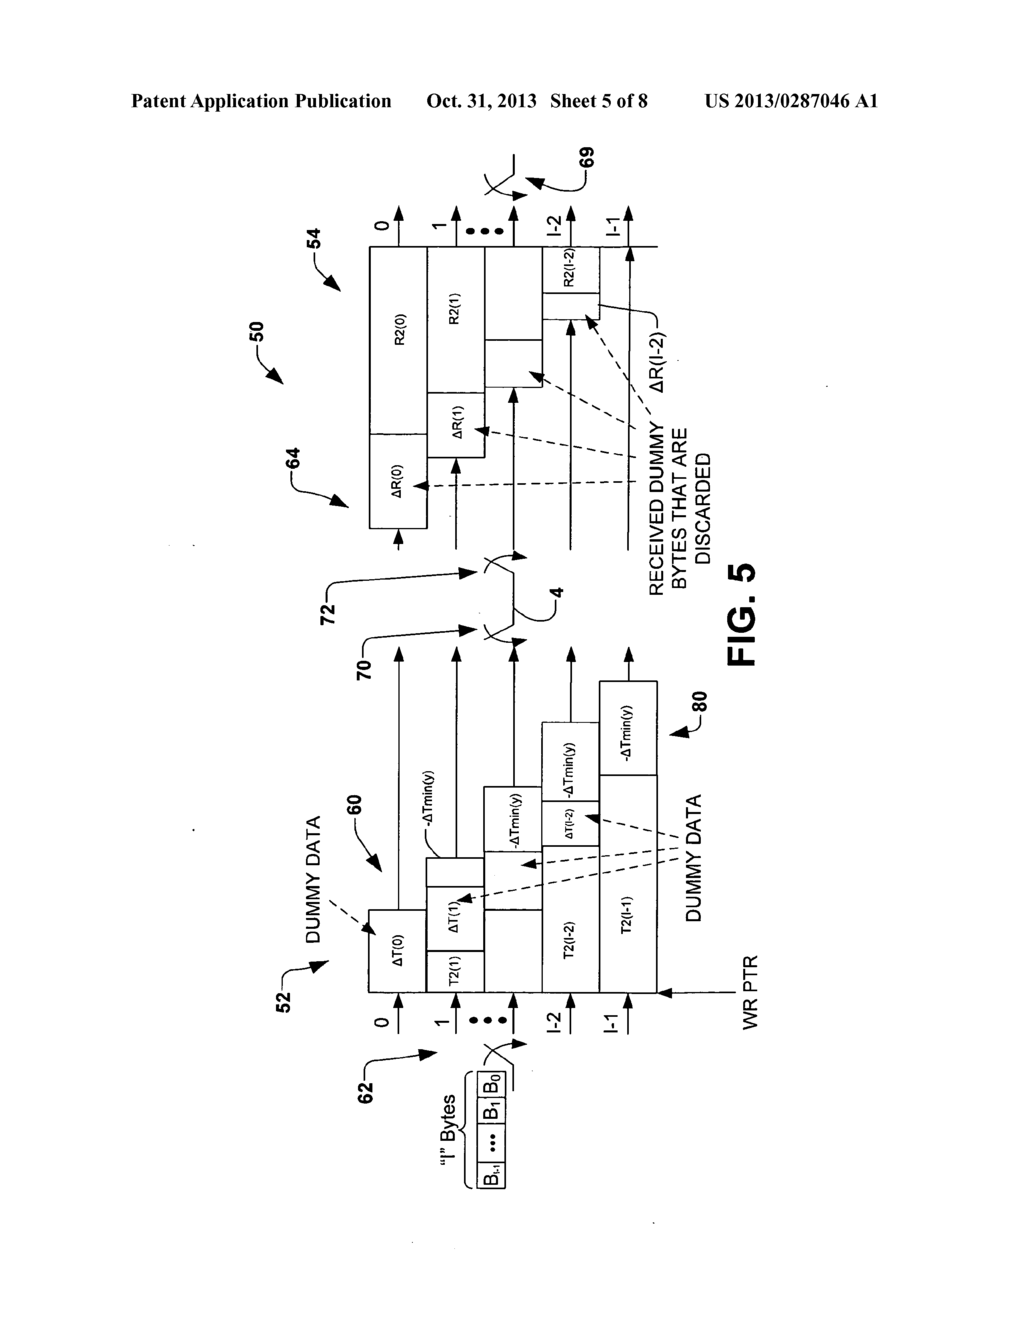 hight resolution of seamless change of depth of a general convolutional interleaver during transmission without loss of data diagram schematic and image 06